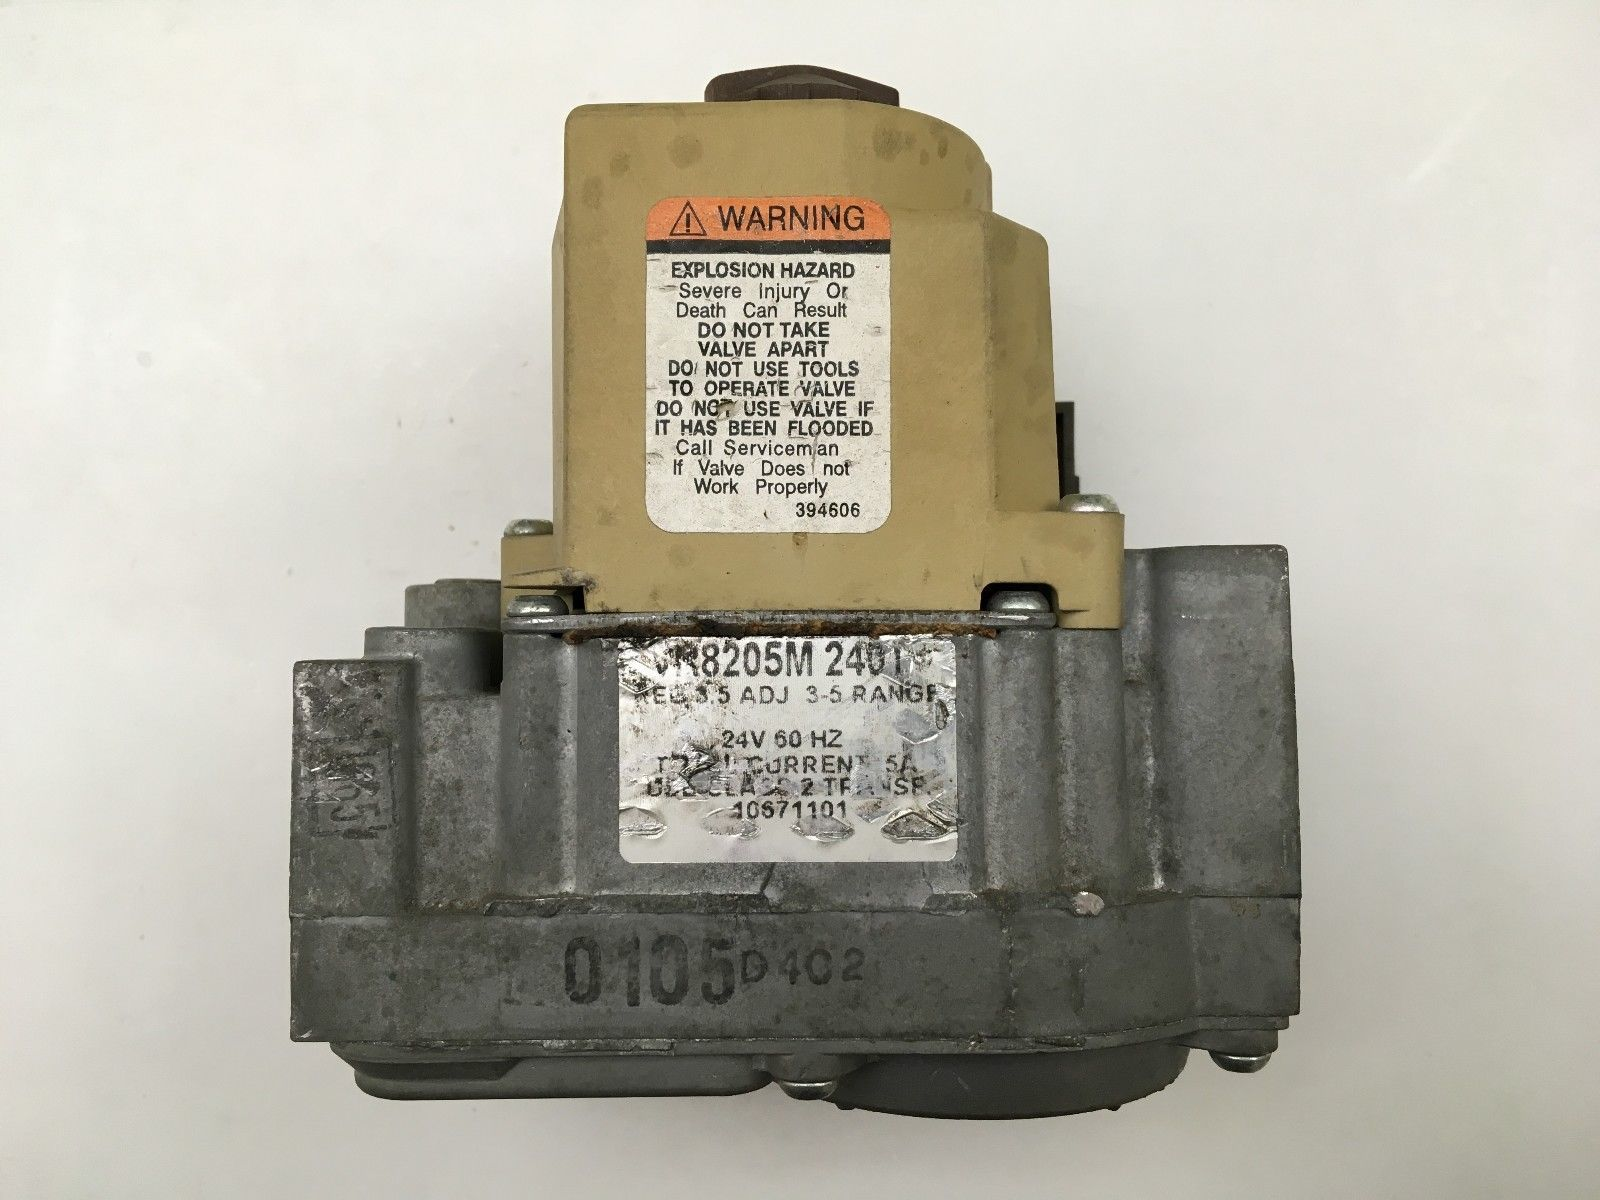 a87b69f61bb HONEYWELL VR8205M 2401 Furnace Gas Valve and 50 similar items. 57